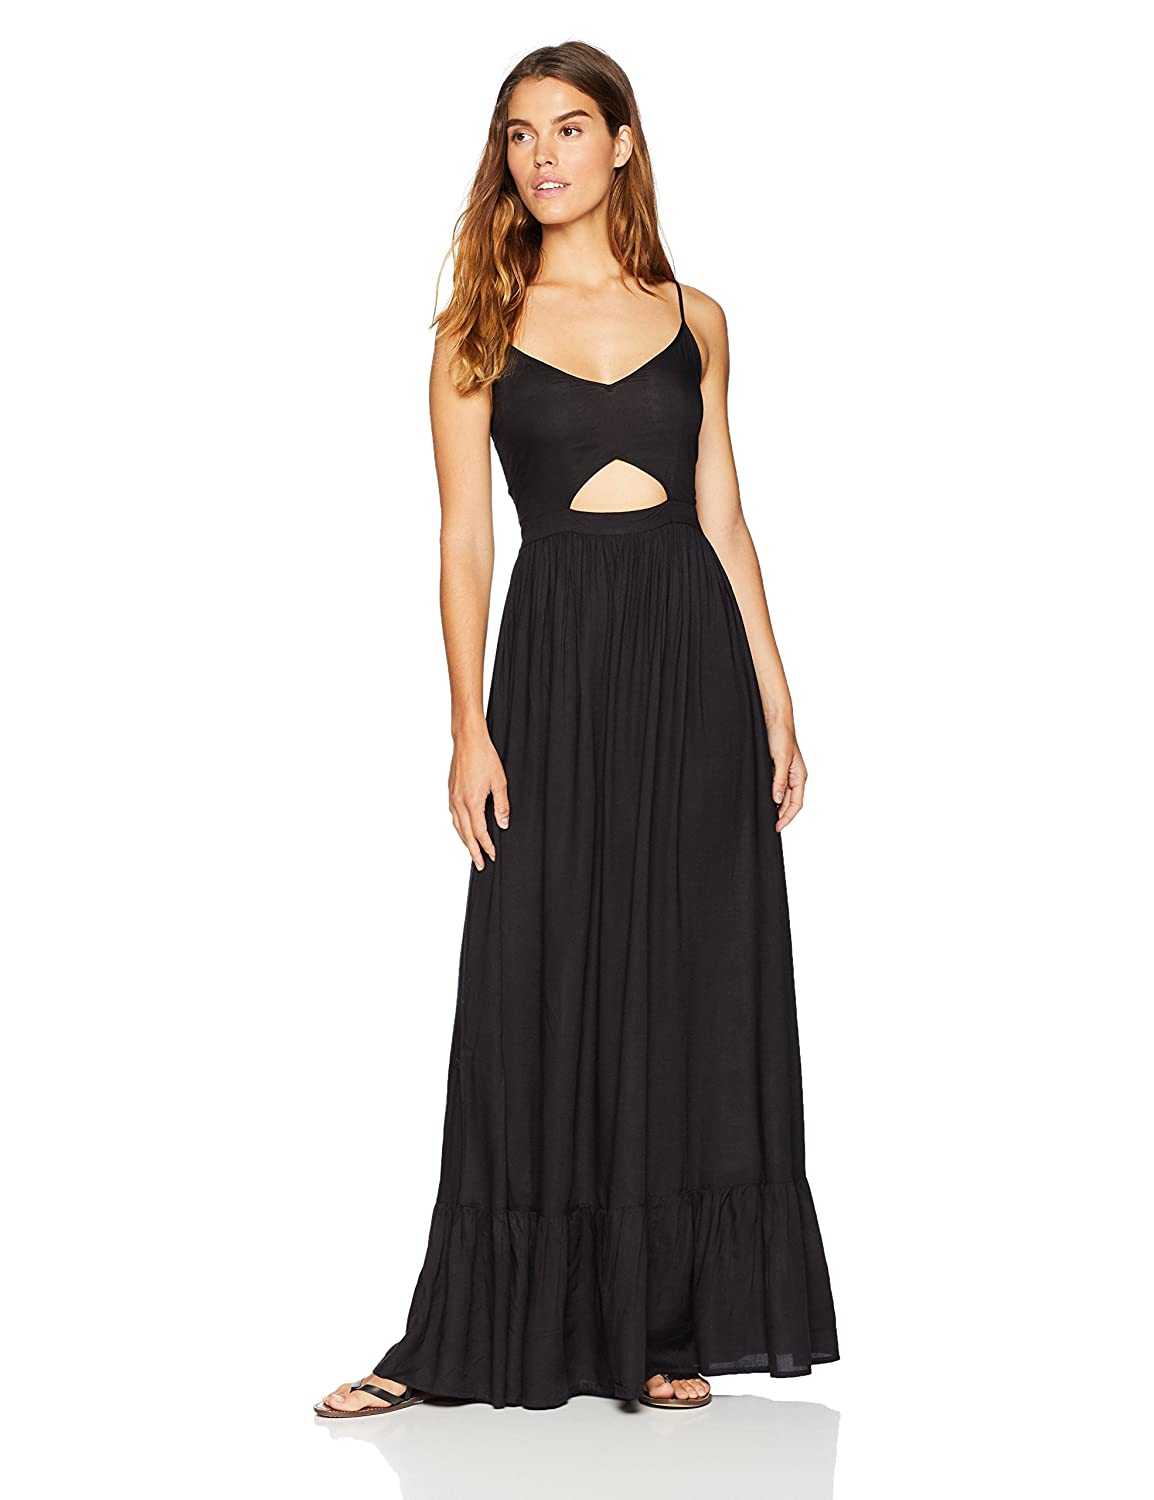 26311b4d30 Amazon.com  Wild Oasis Beachwear Women s V Neck Spaghetti Strap Cut Out  Solid Maxi Dress  Clothing